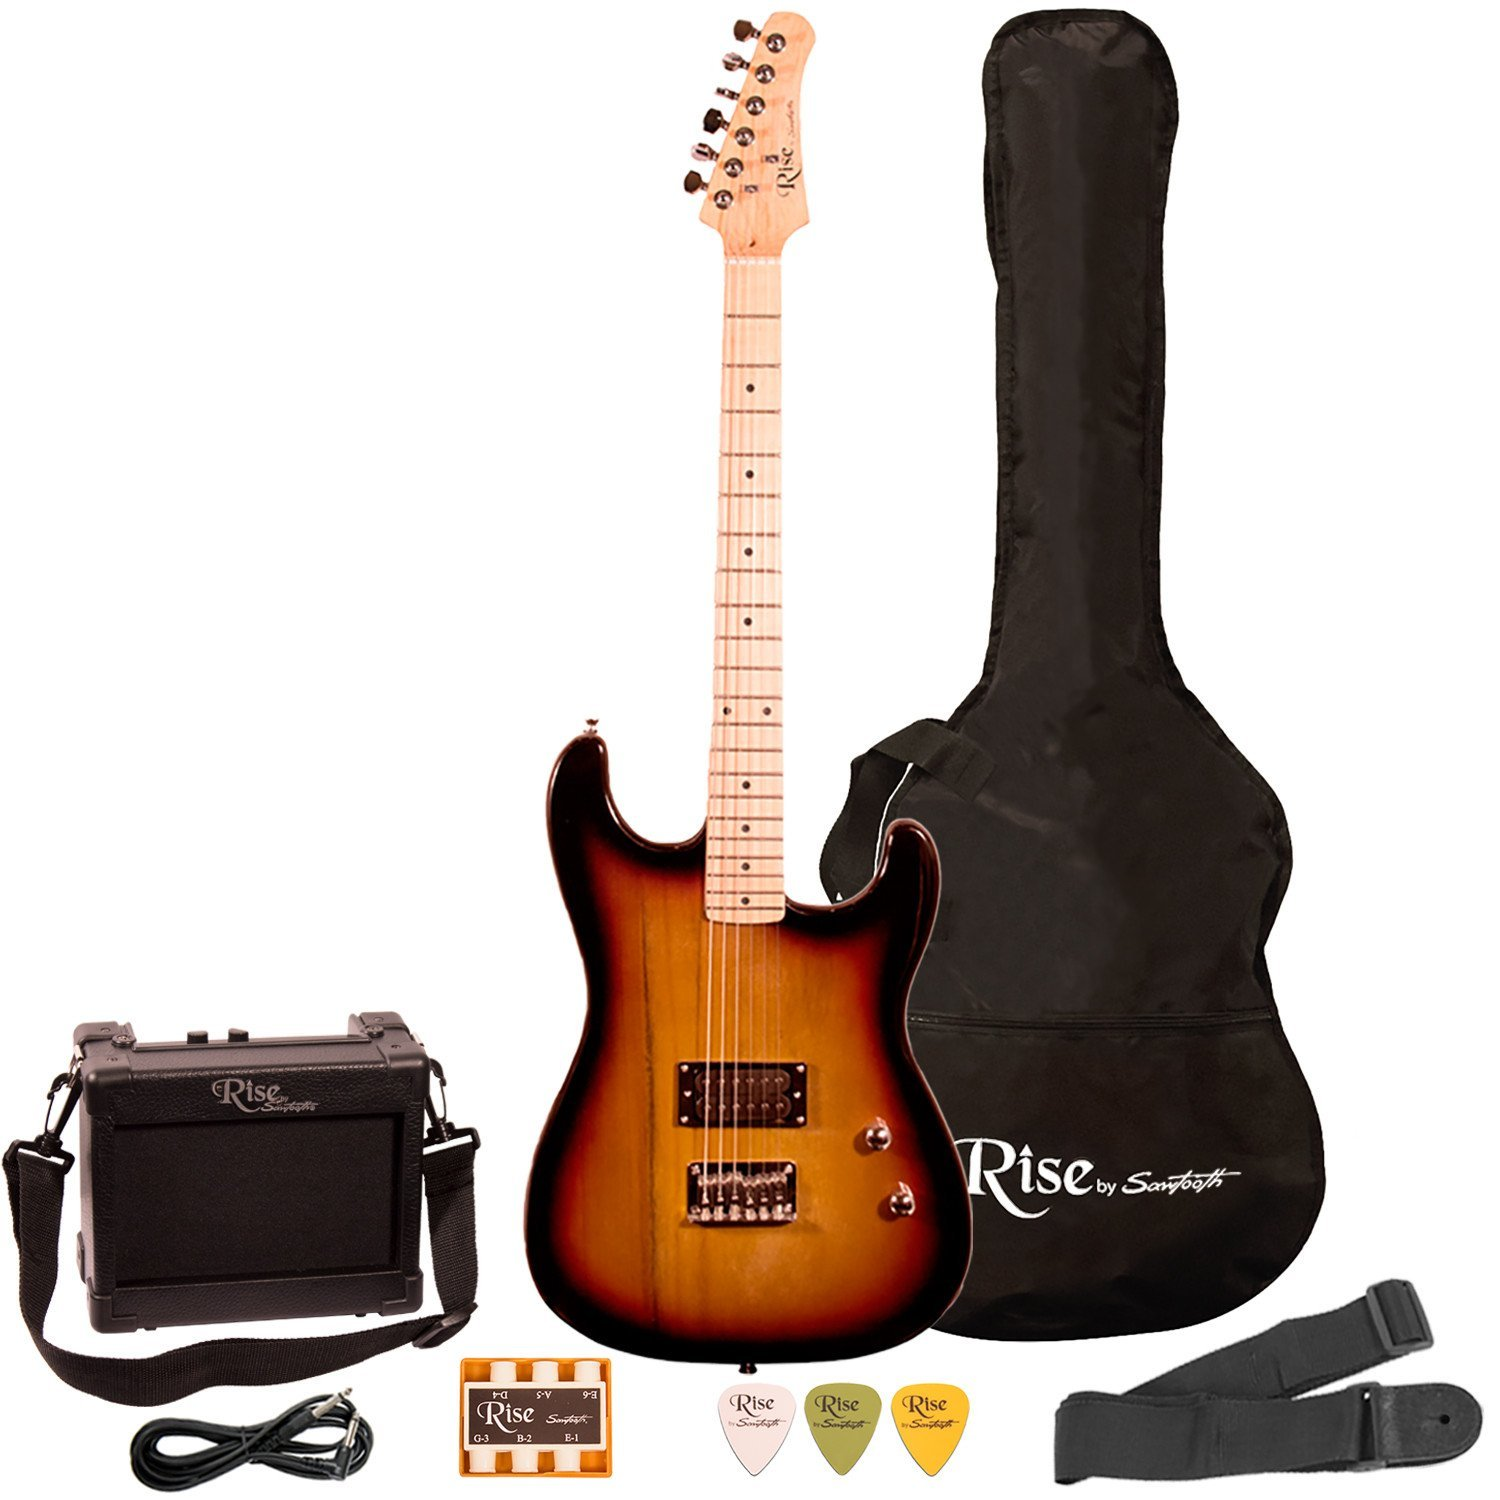 Rise by Sawtooth Right-Handed Full Size Beginner's Electric Guitar with Gig Bag &... by Sawtooth